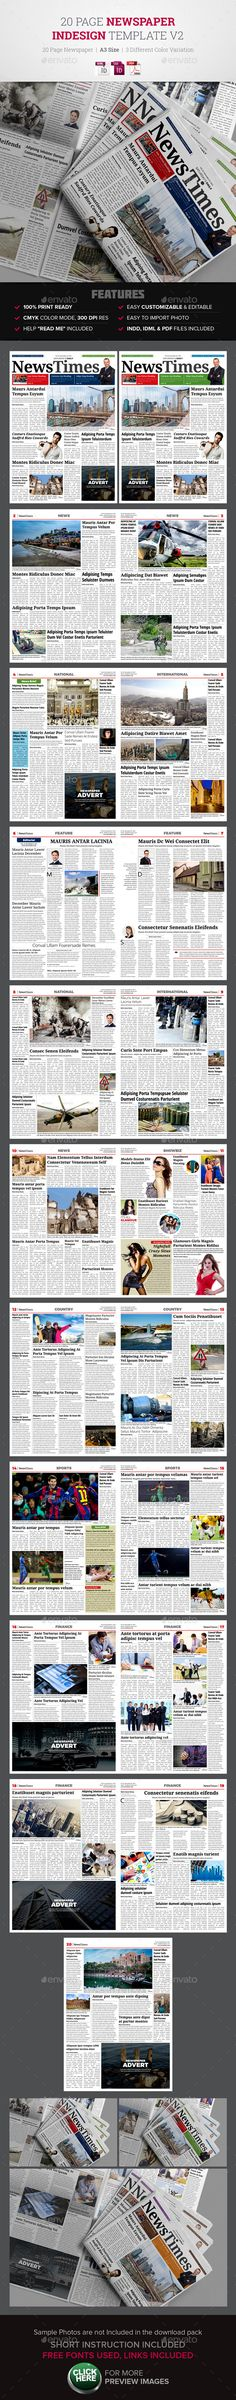 Newspaper Template For Adobe Indesign Cs6 | Free Newspaper